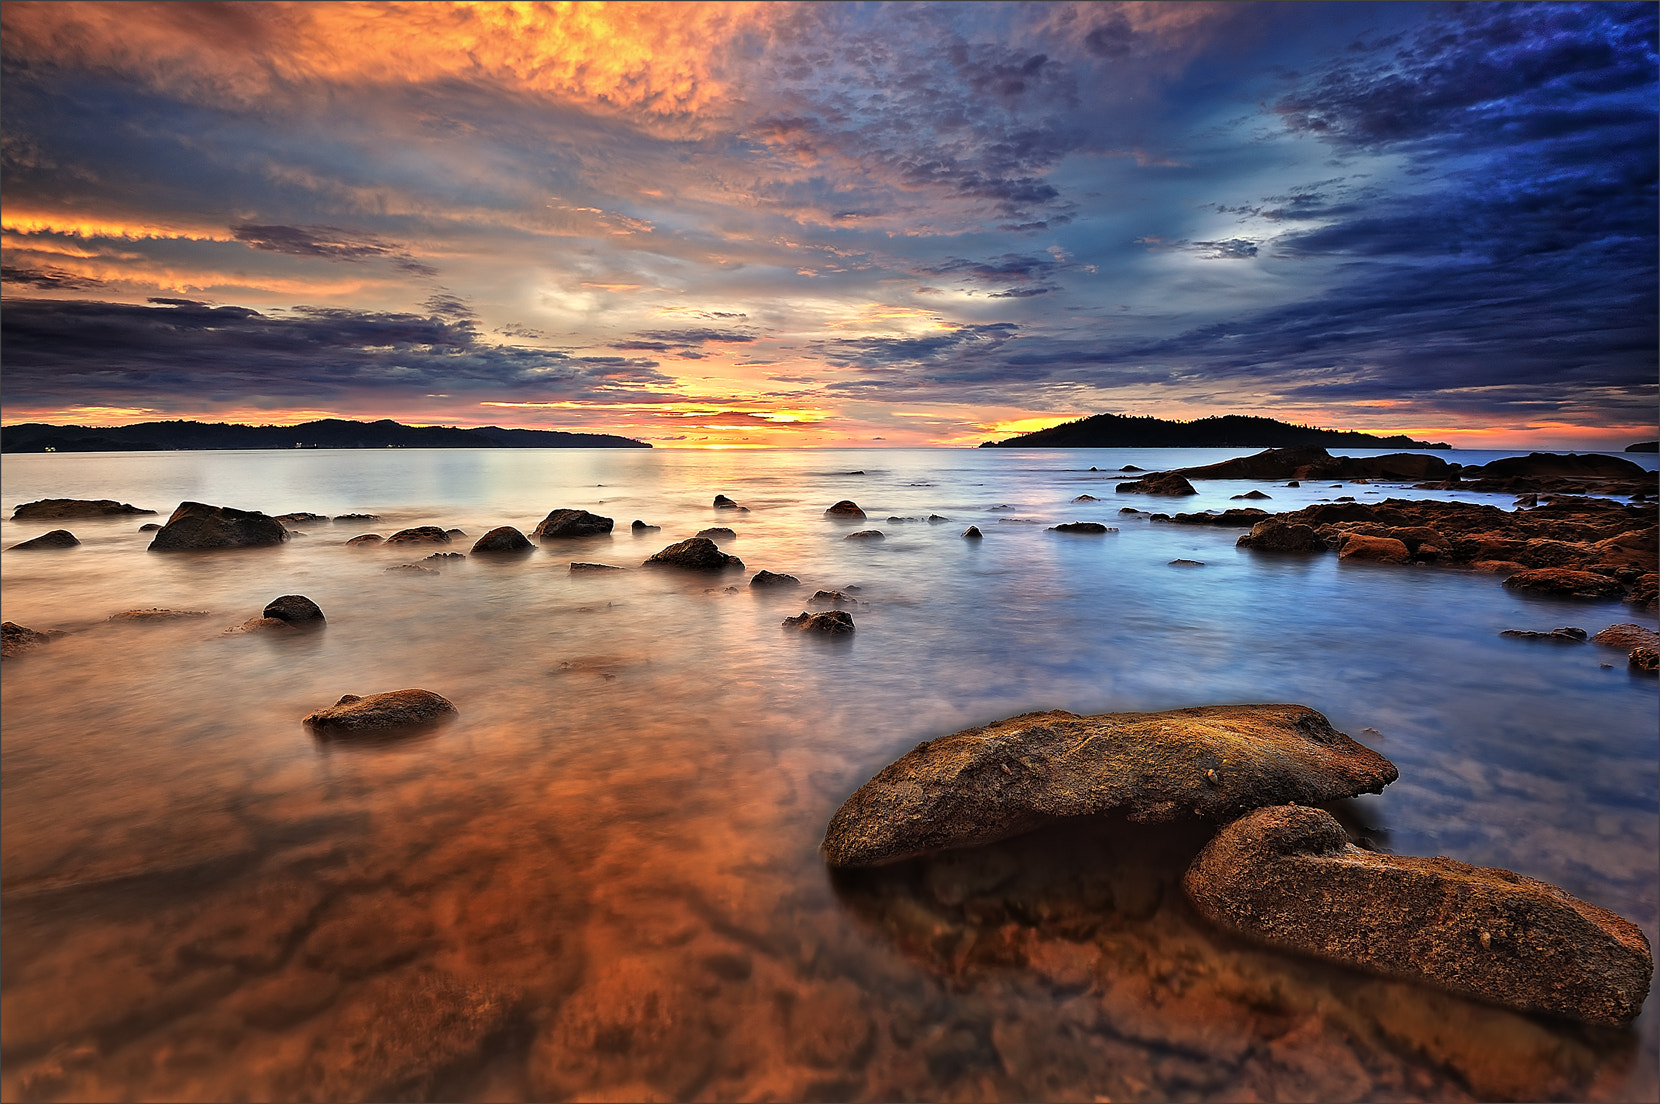 Photograph The Stone Age by Mohd Zaki Shamsudin on 500px